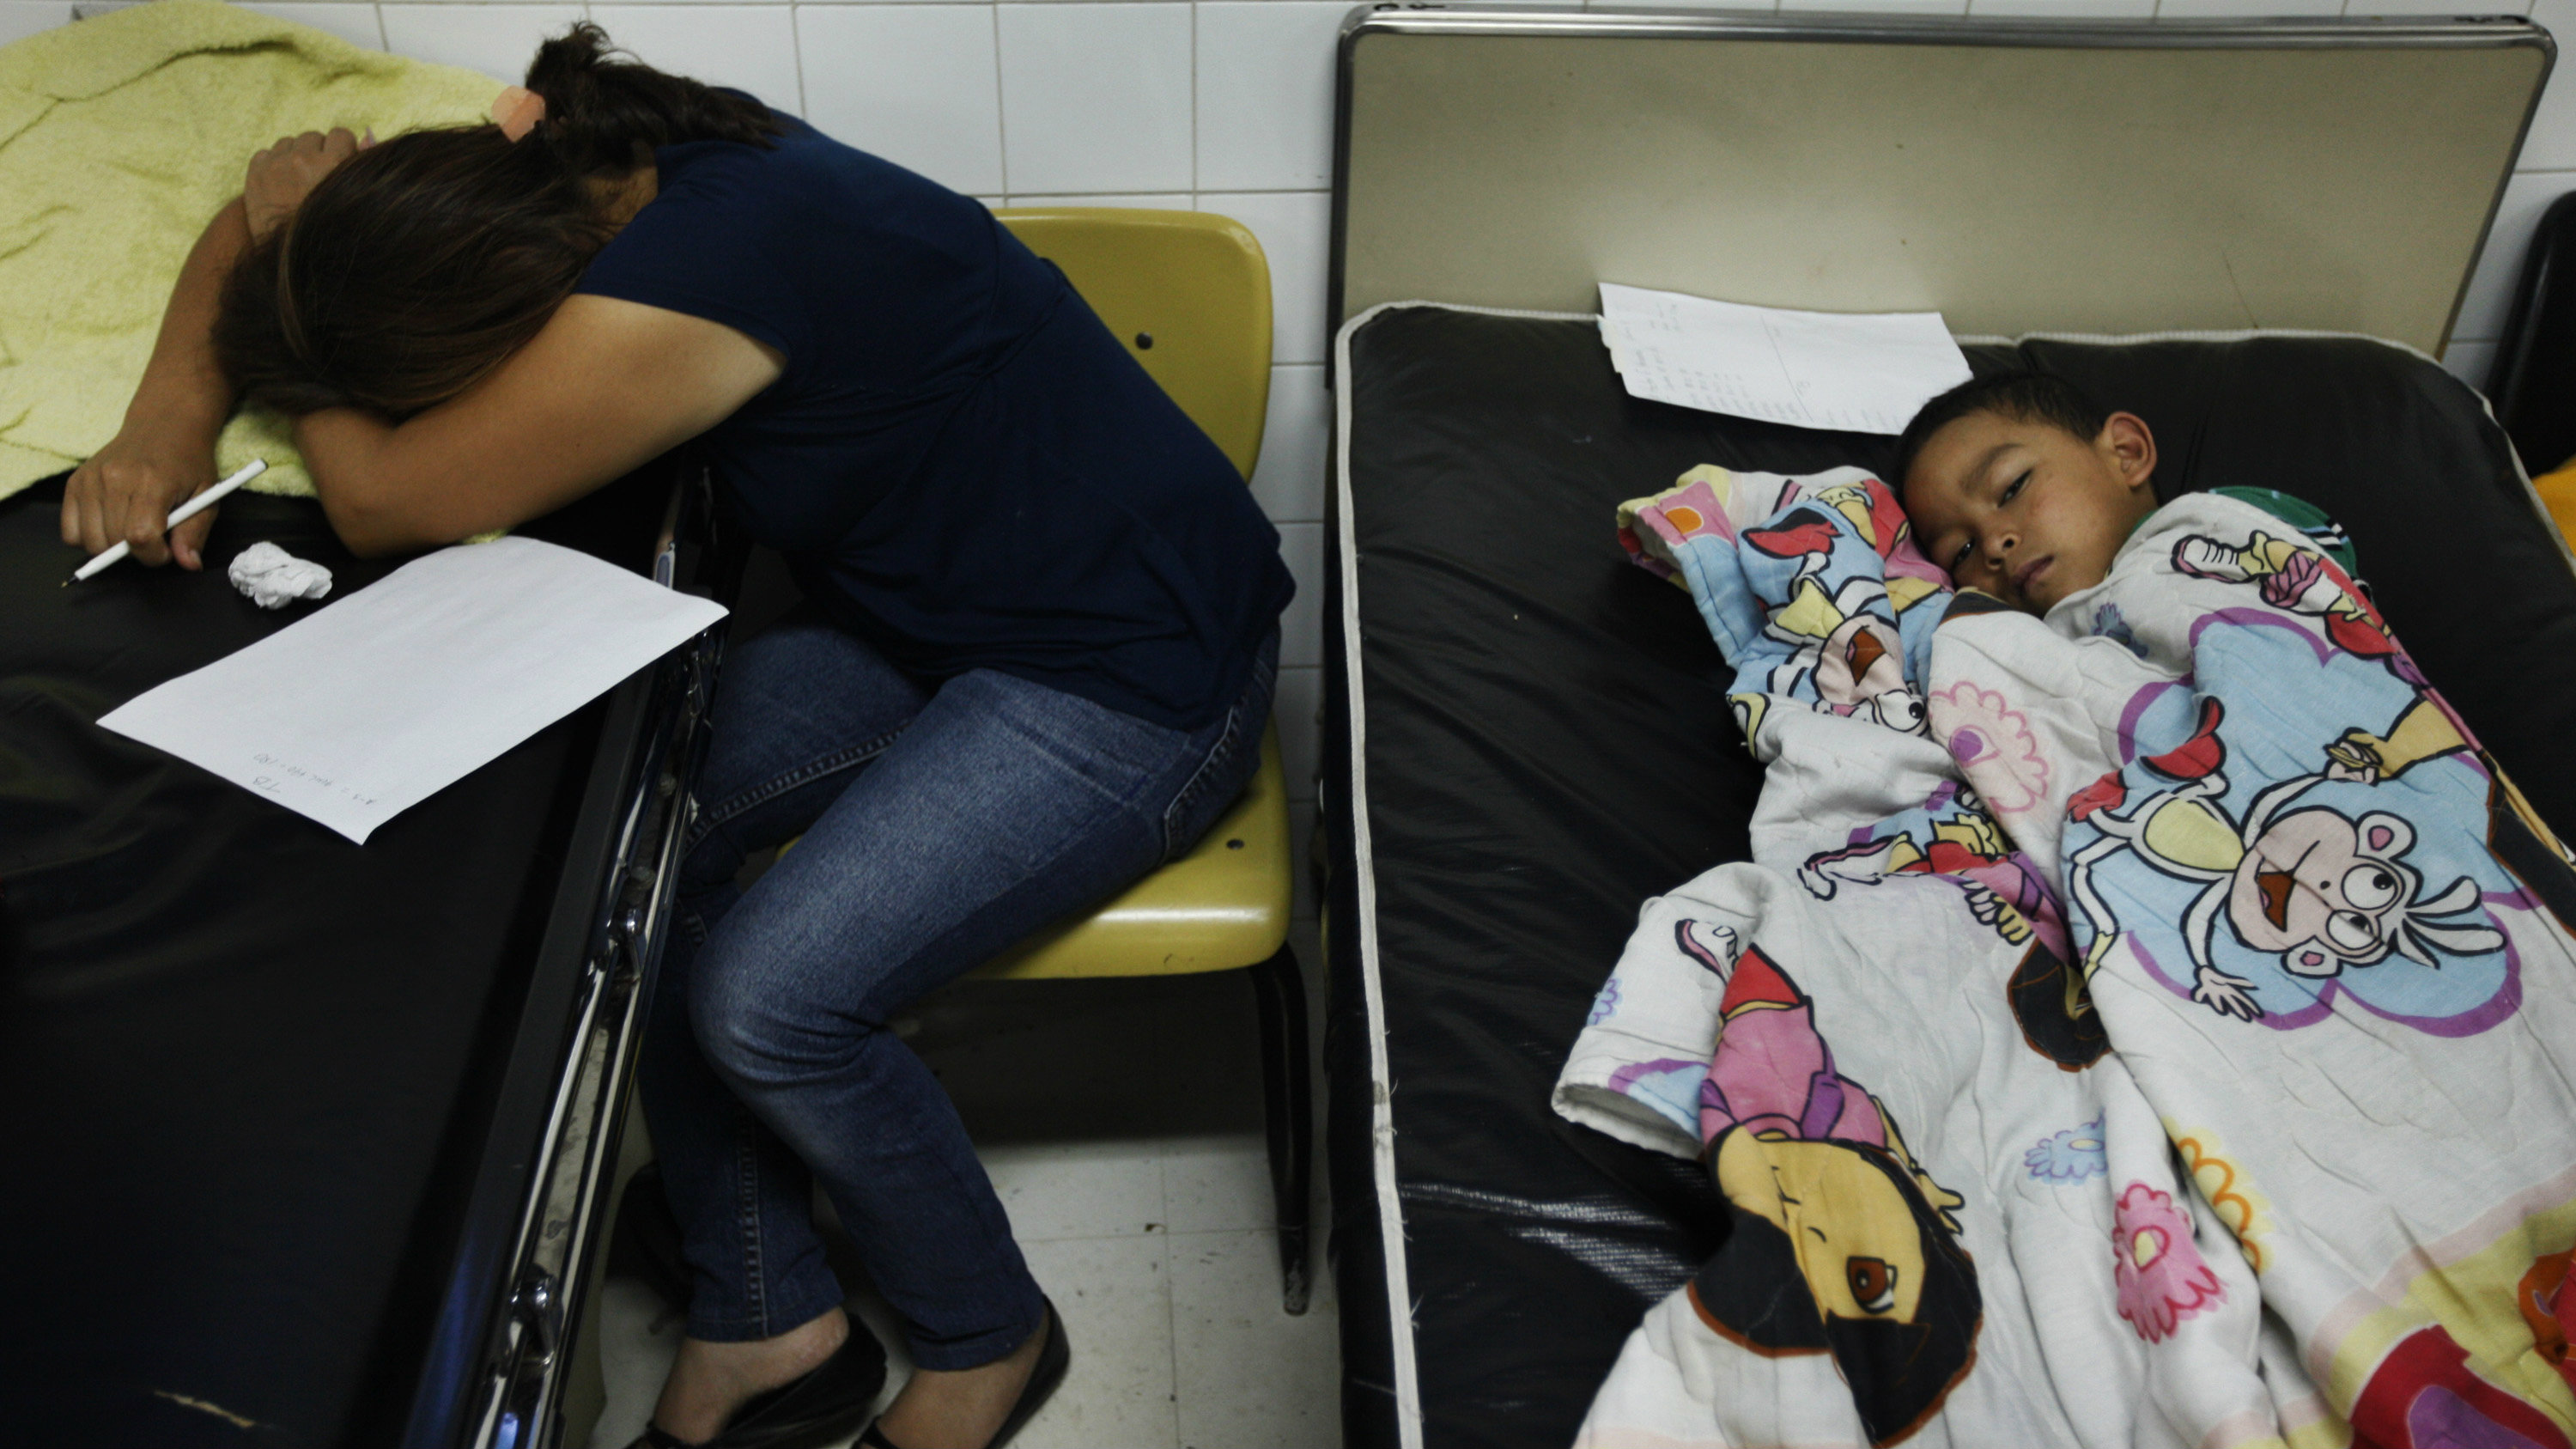 The mother of a patient suffering from dengue fever sleeps by his bedside at Hospital Escuela in Tegucigalpa..